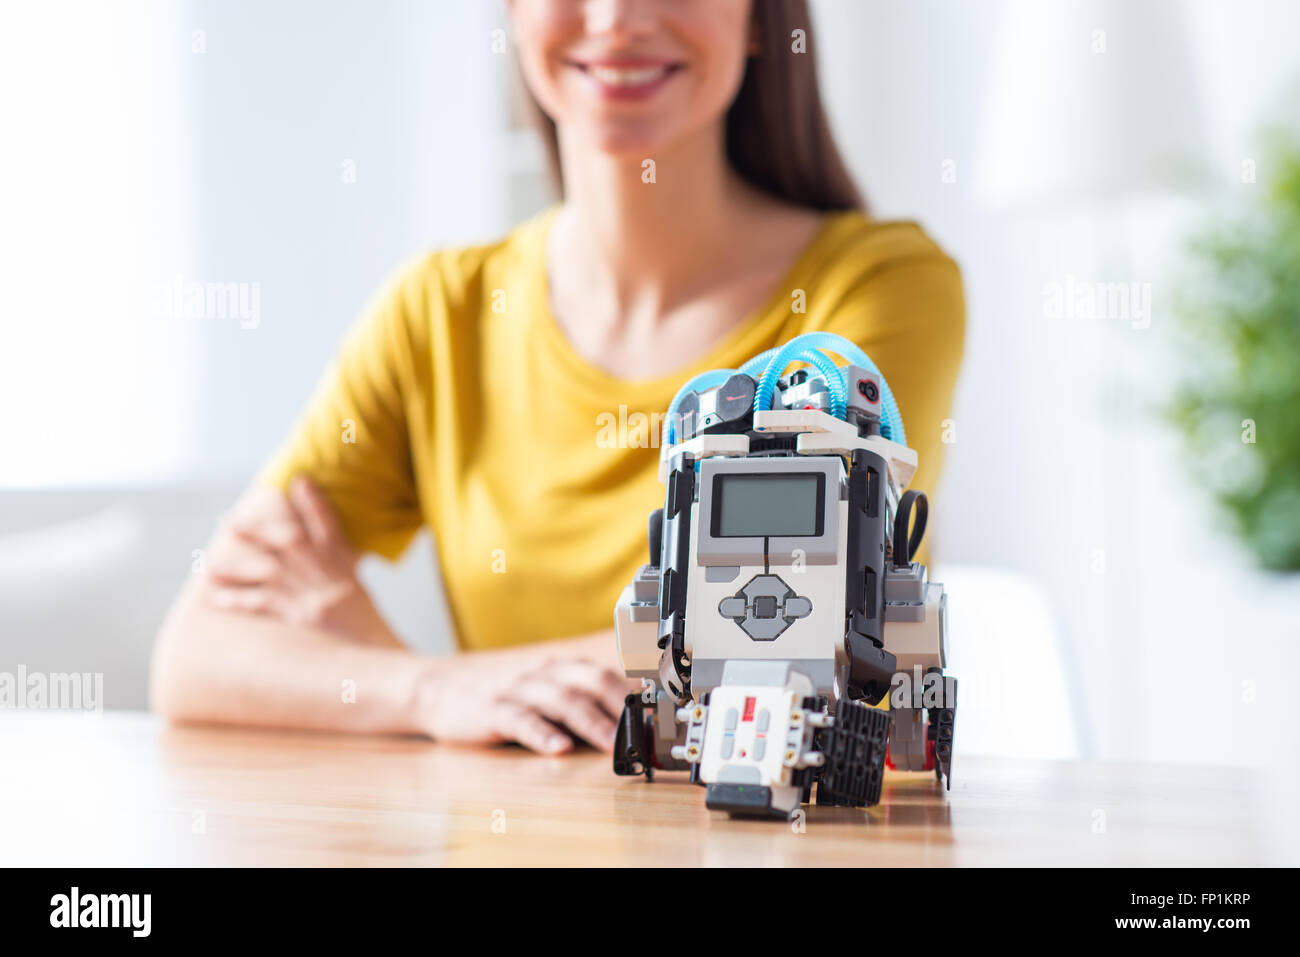 Robot in my life now - Stock Image